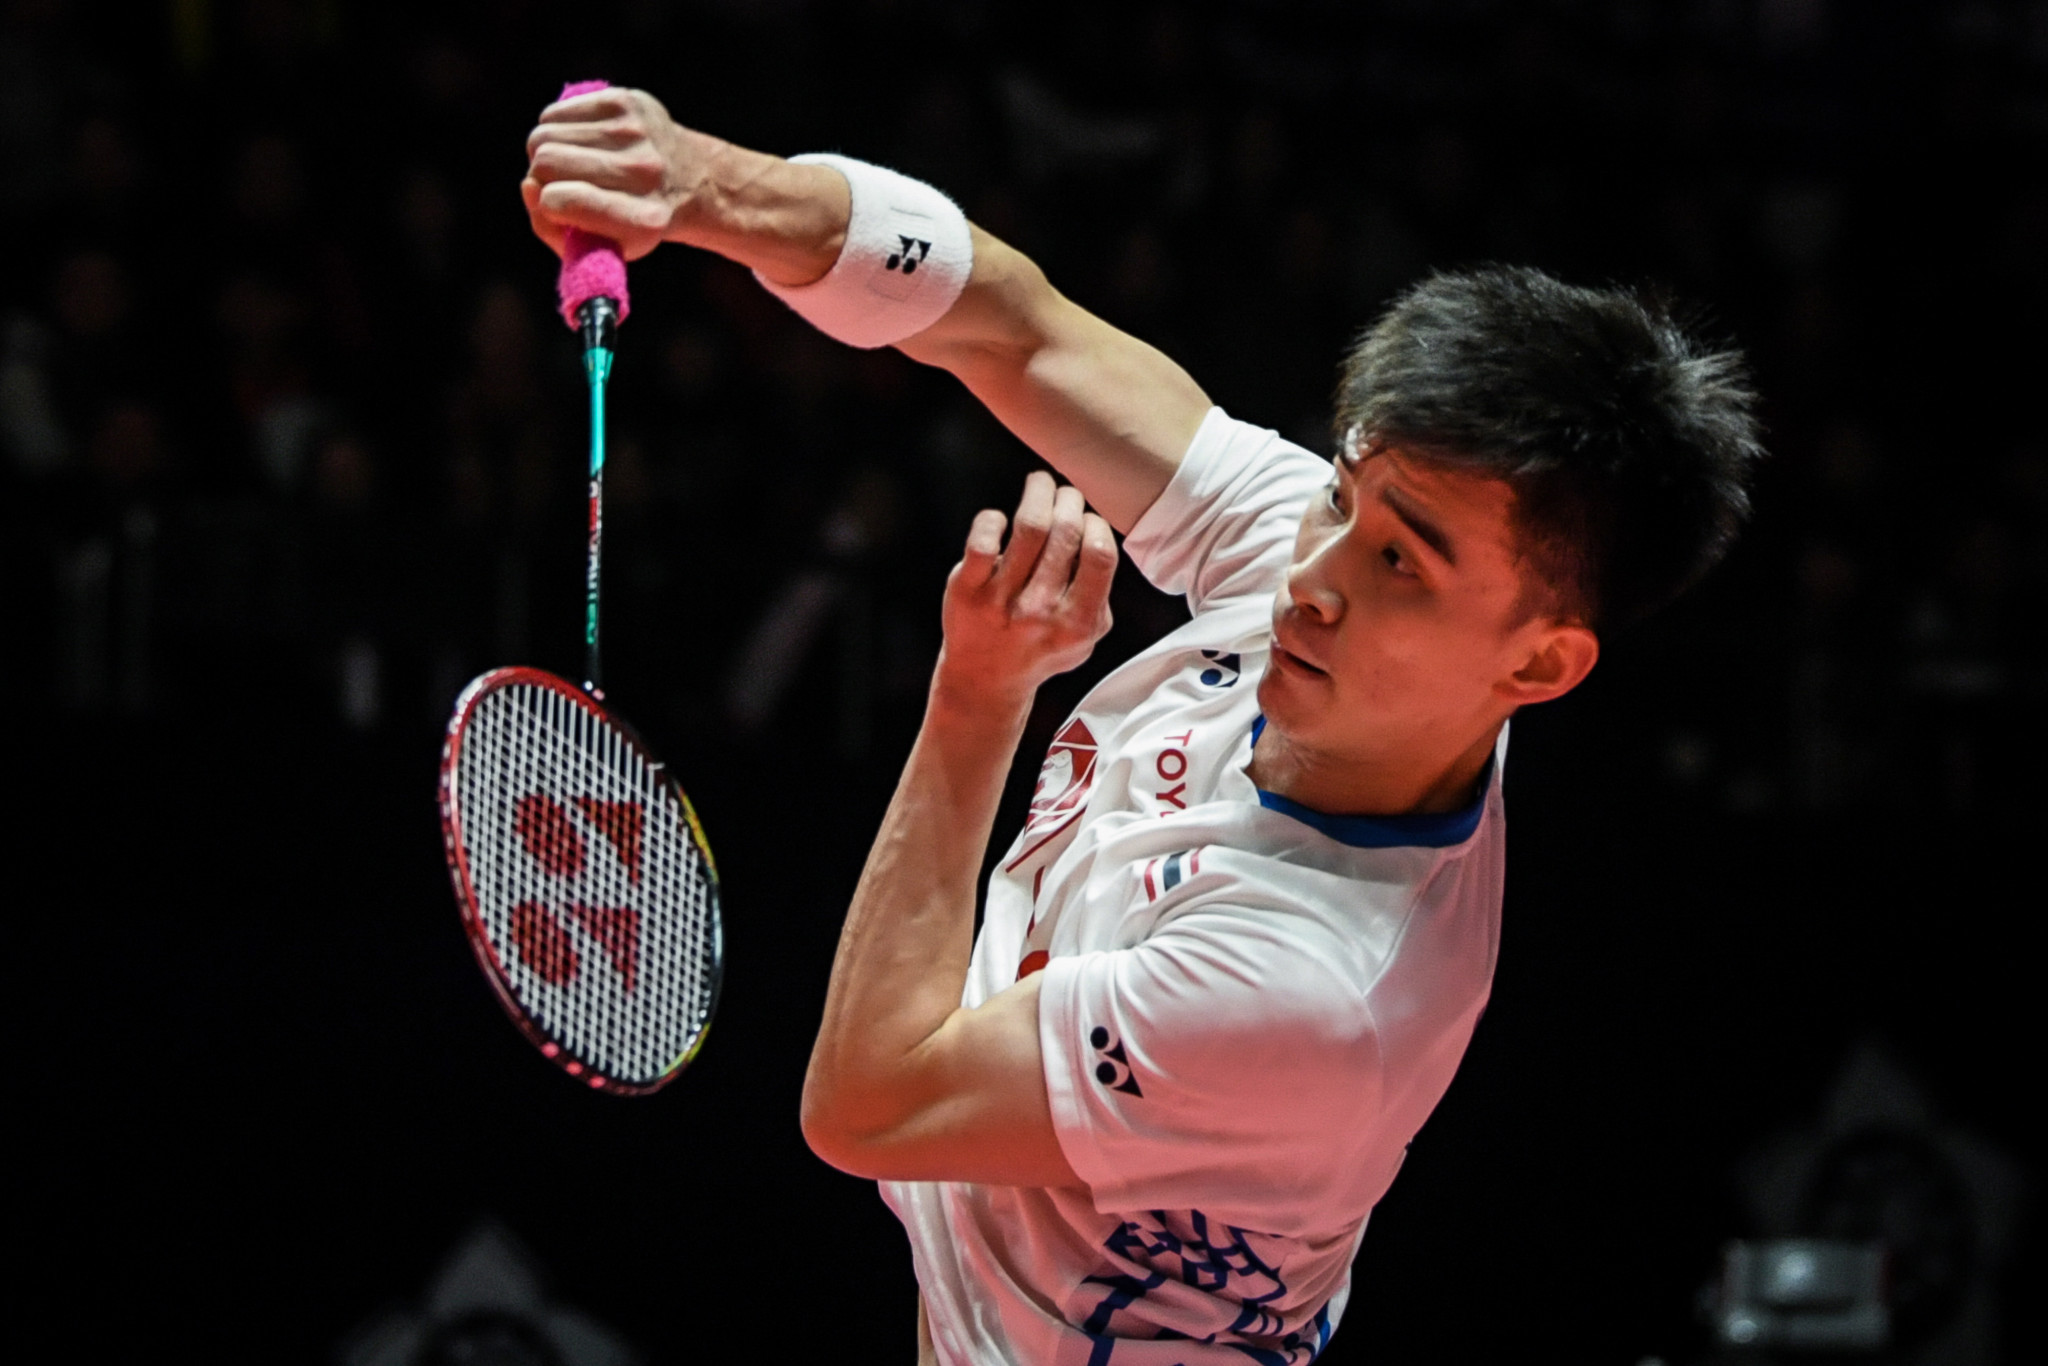 Four countries reach last eight at Badminton Asia Mixed Team Championships